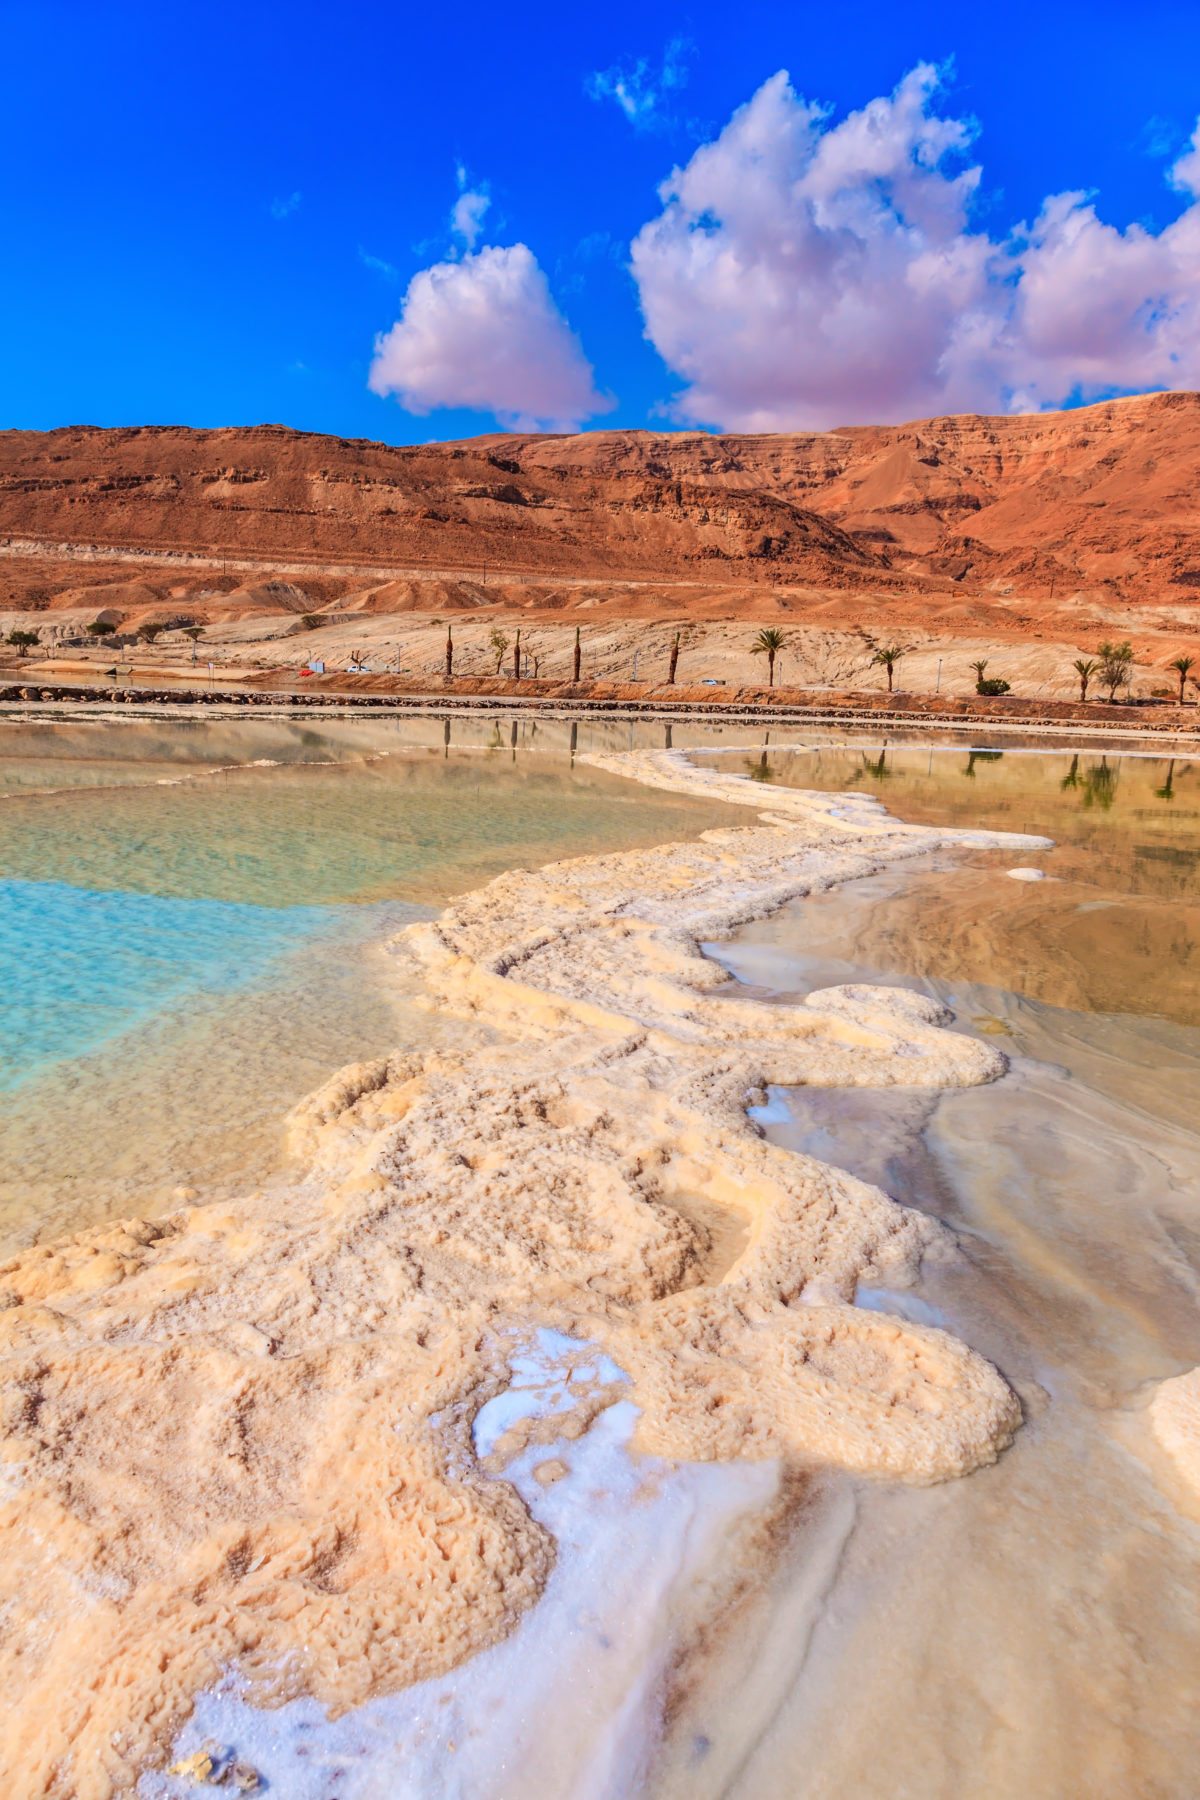 The Dead Sea at coast of Israel